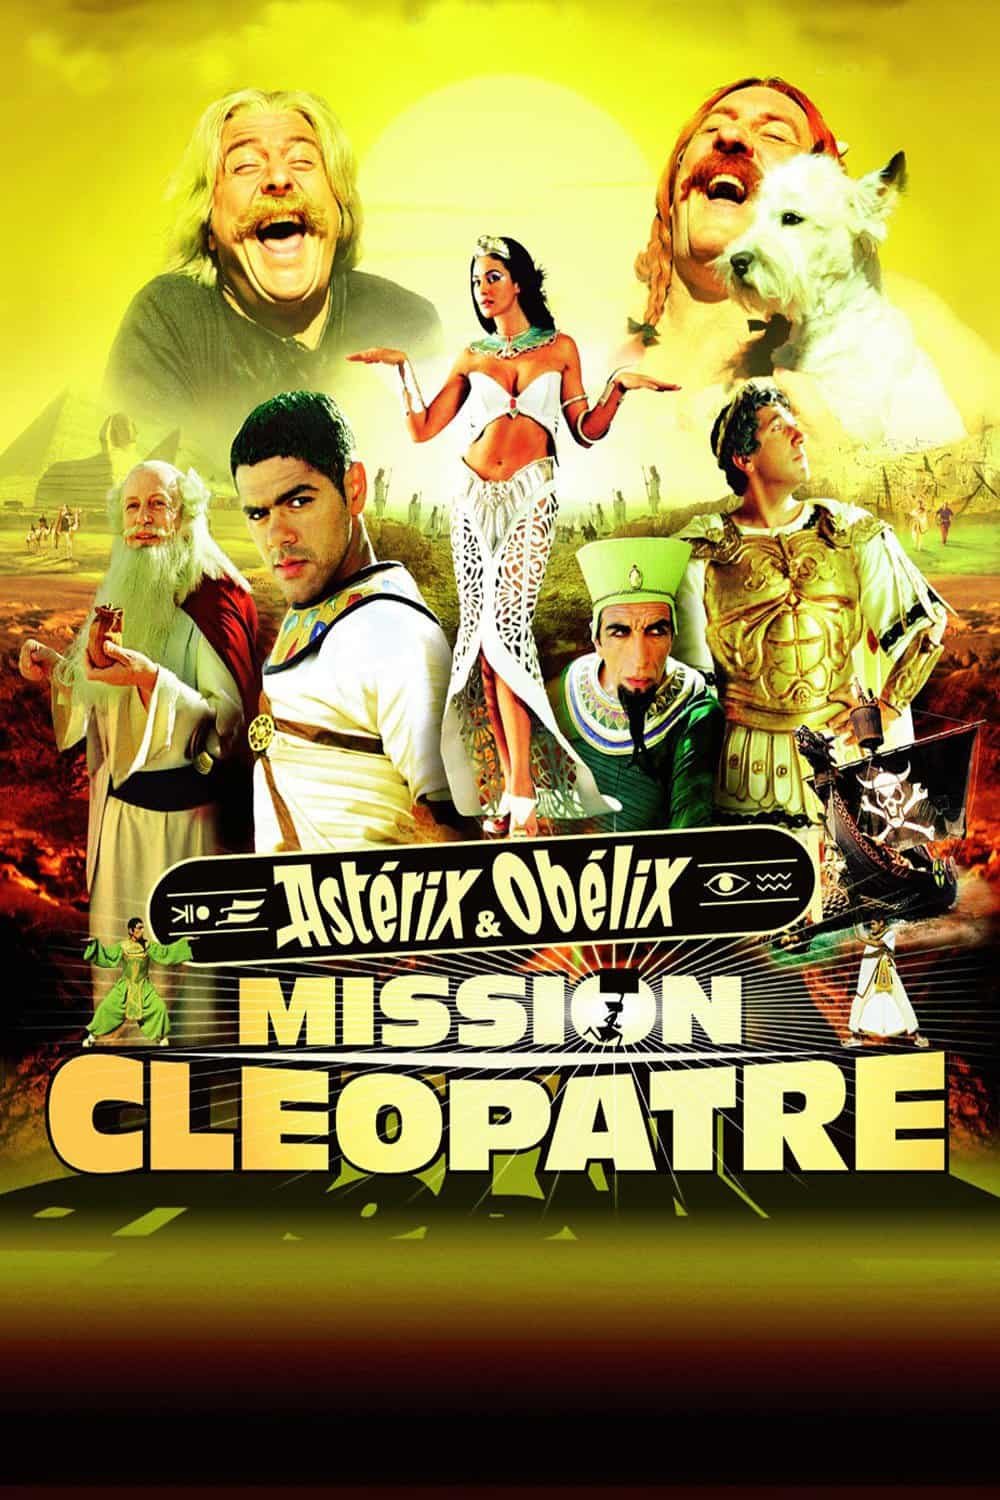 Asterix and Obelix: Mission Cleopatra, 2002